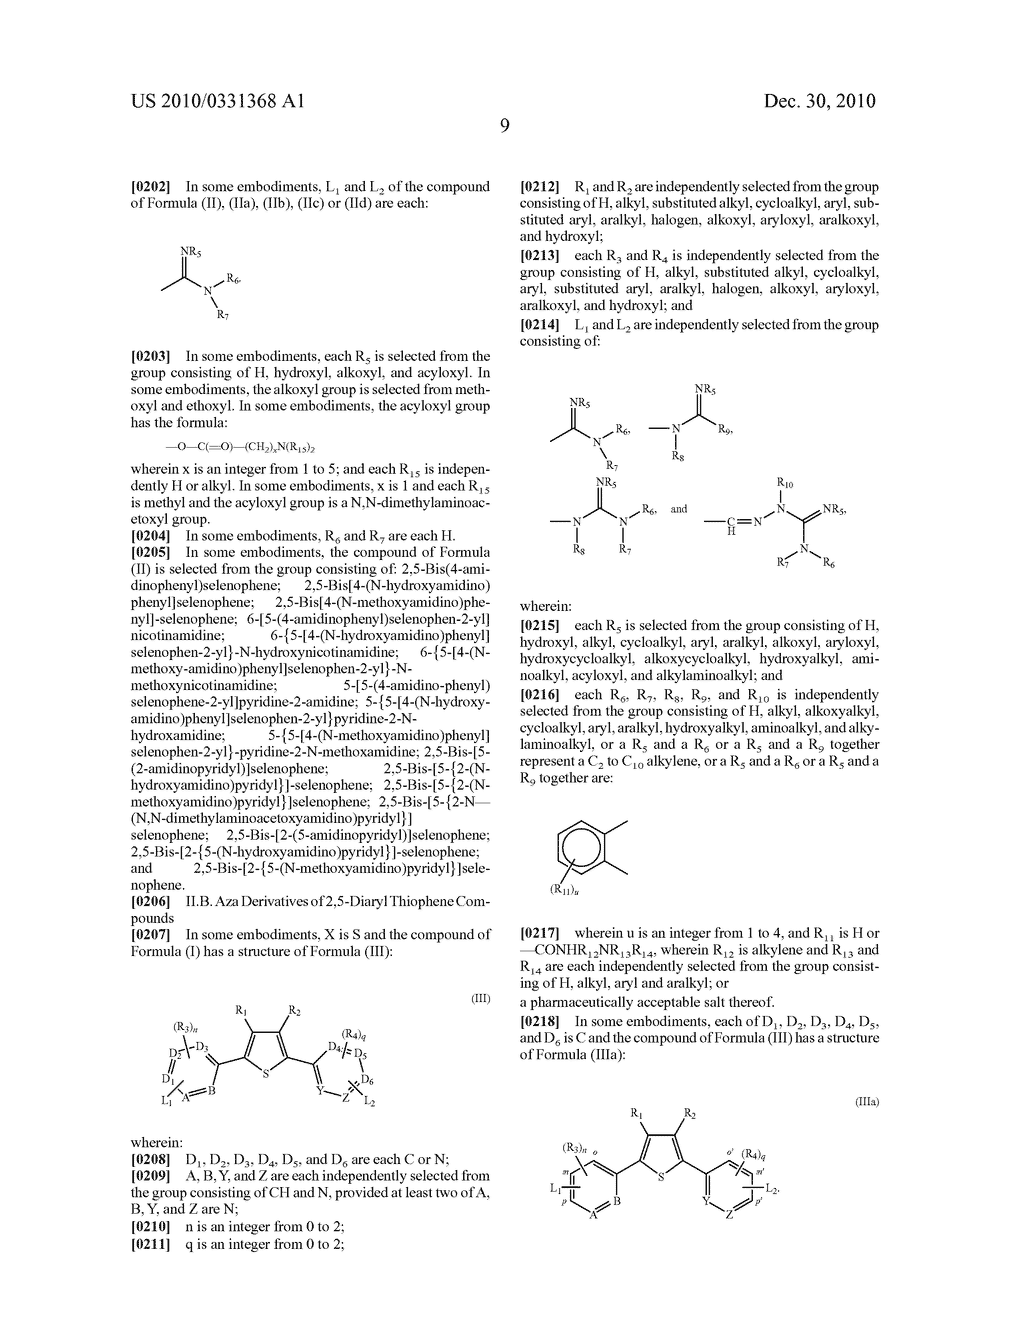 2,5-DIARYL SELENOPHENE COMPOUNDS, AZA 2,5-DIARYL THIOPHENE COMPOUNDS, AND THEIR PRODRUGS AS ANTIPROTOZOAL AGENTS - diagram, schematic, and image 10